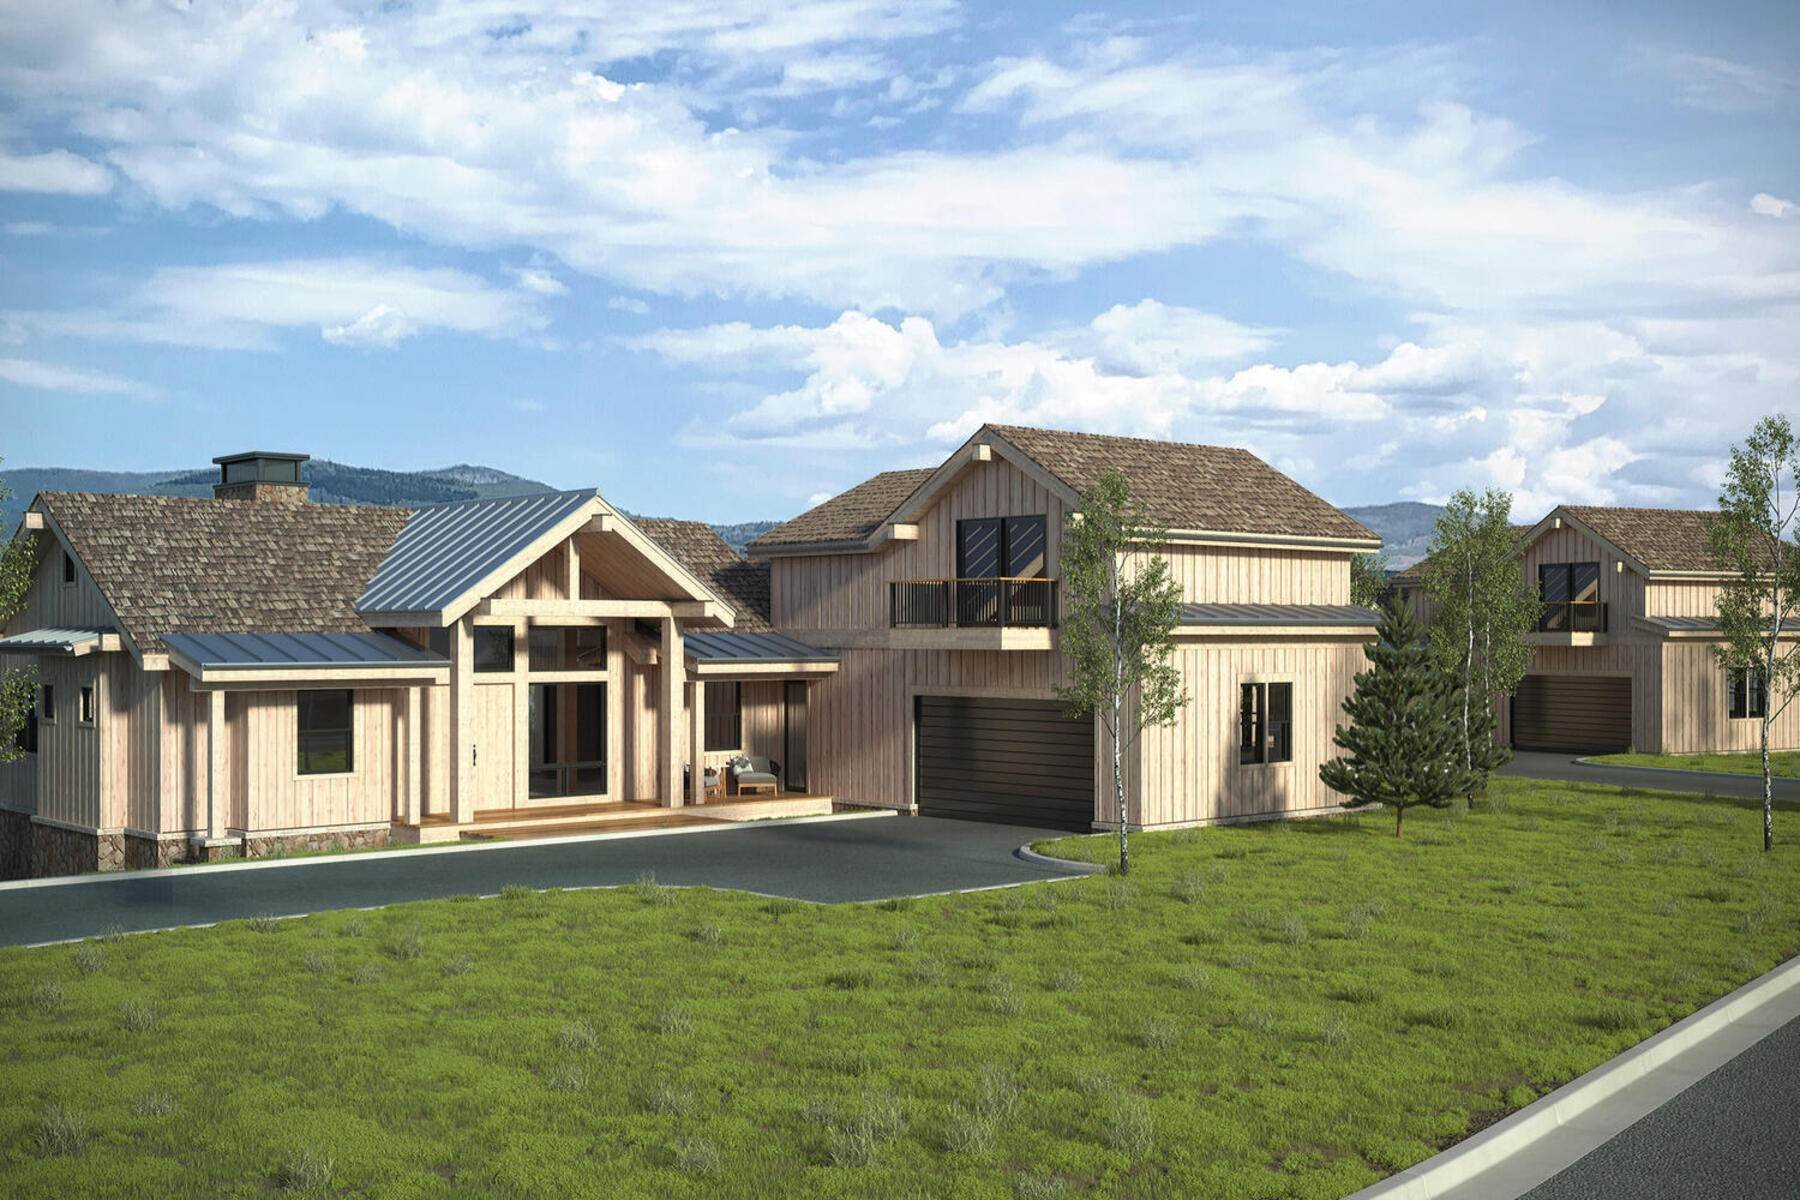 fractional ownership prop for Sale at 1/8 Fractional Ownership Opportunity In Brand New Kingfisher Cabin 7767 E Stardust Court #321F, 5.22 Heber City, Utah 84032 United States